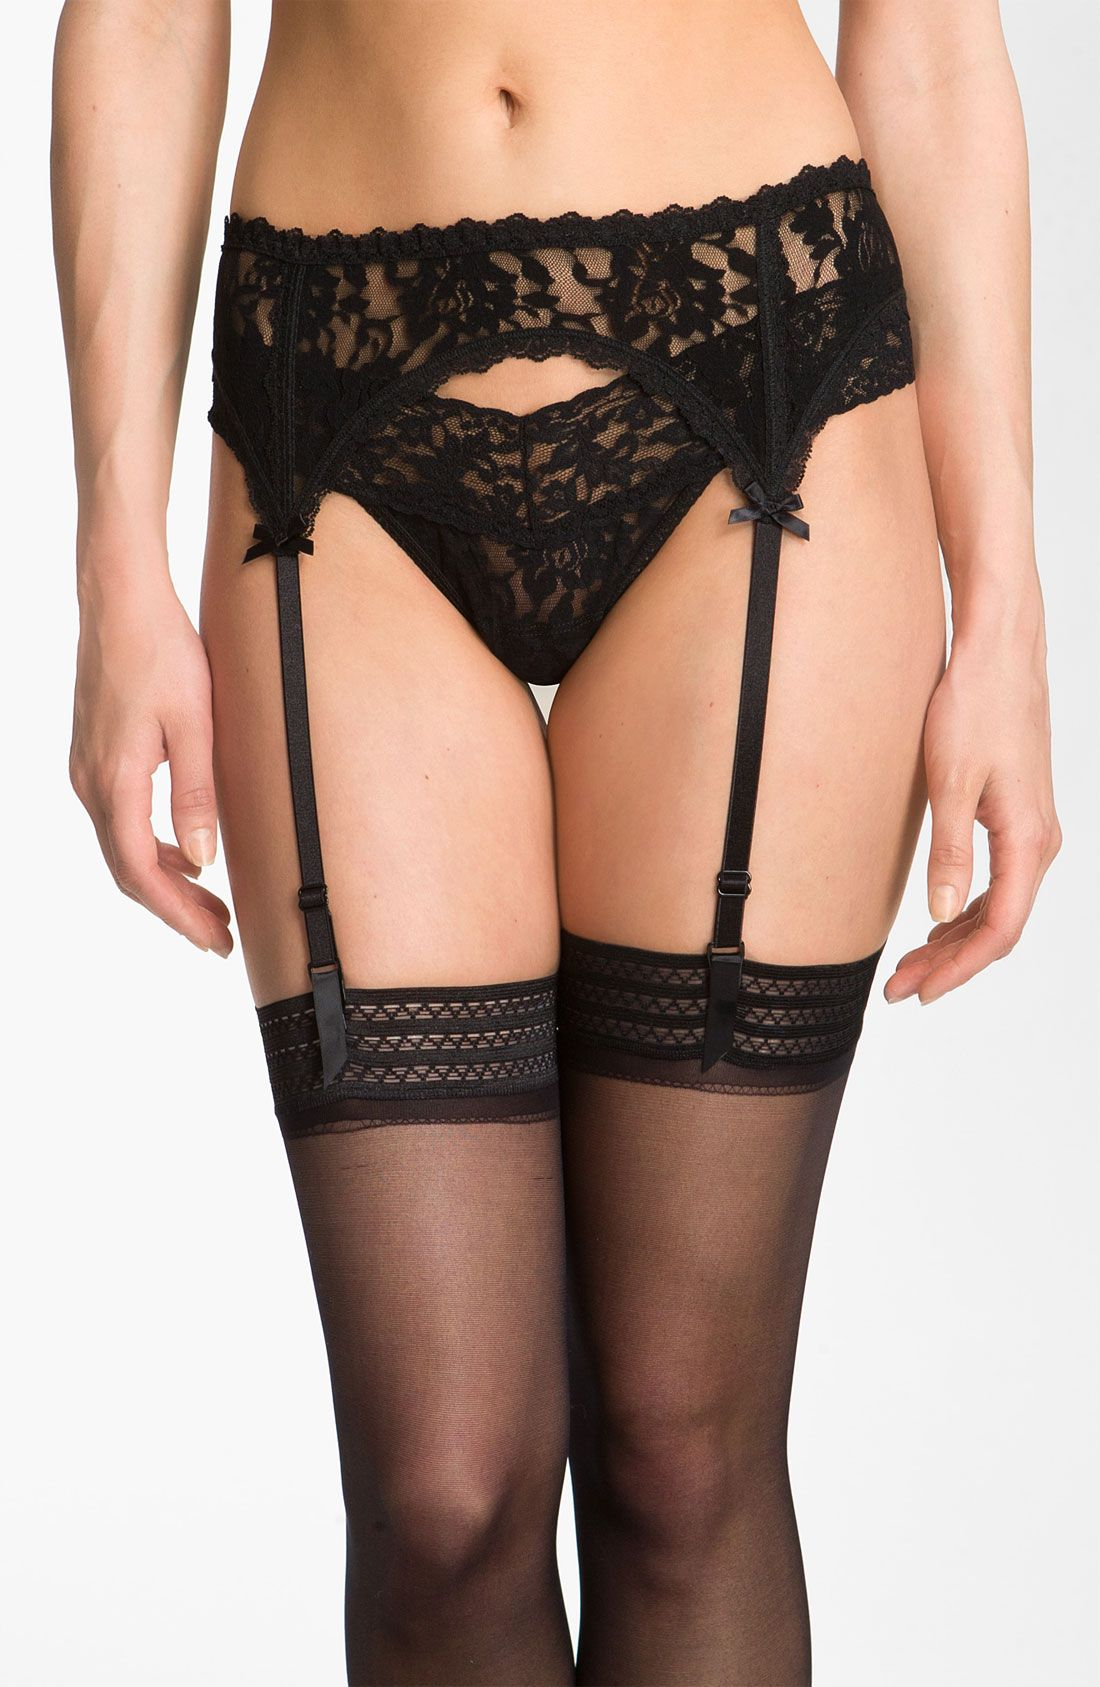 Old fashioned garter belts